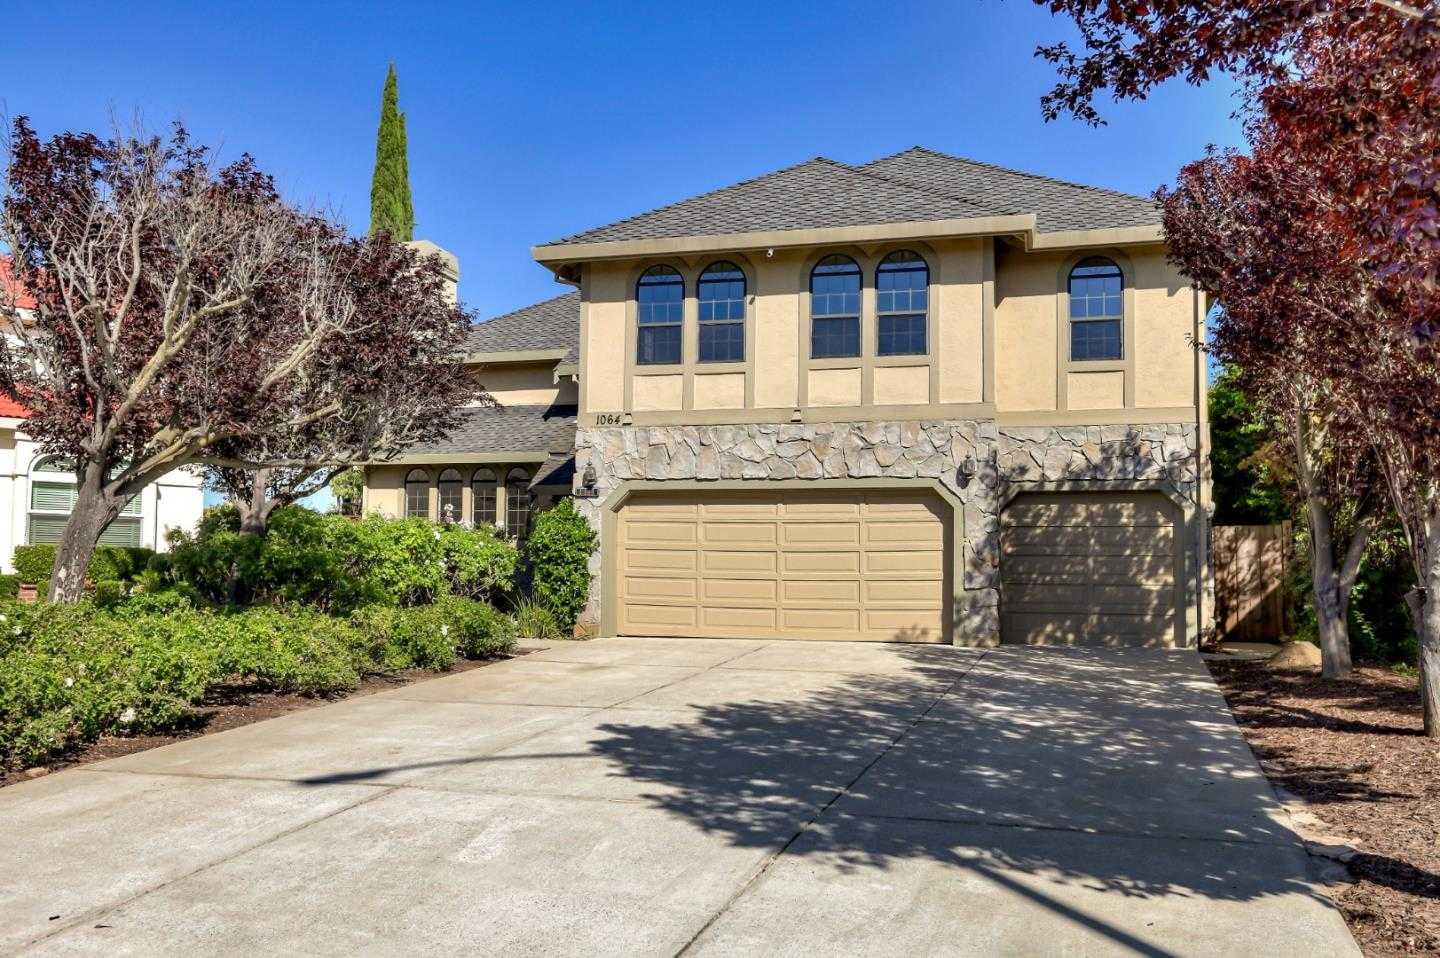 $2,100,000 - 5Br/3Ba -  for Sale in San Jose